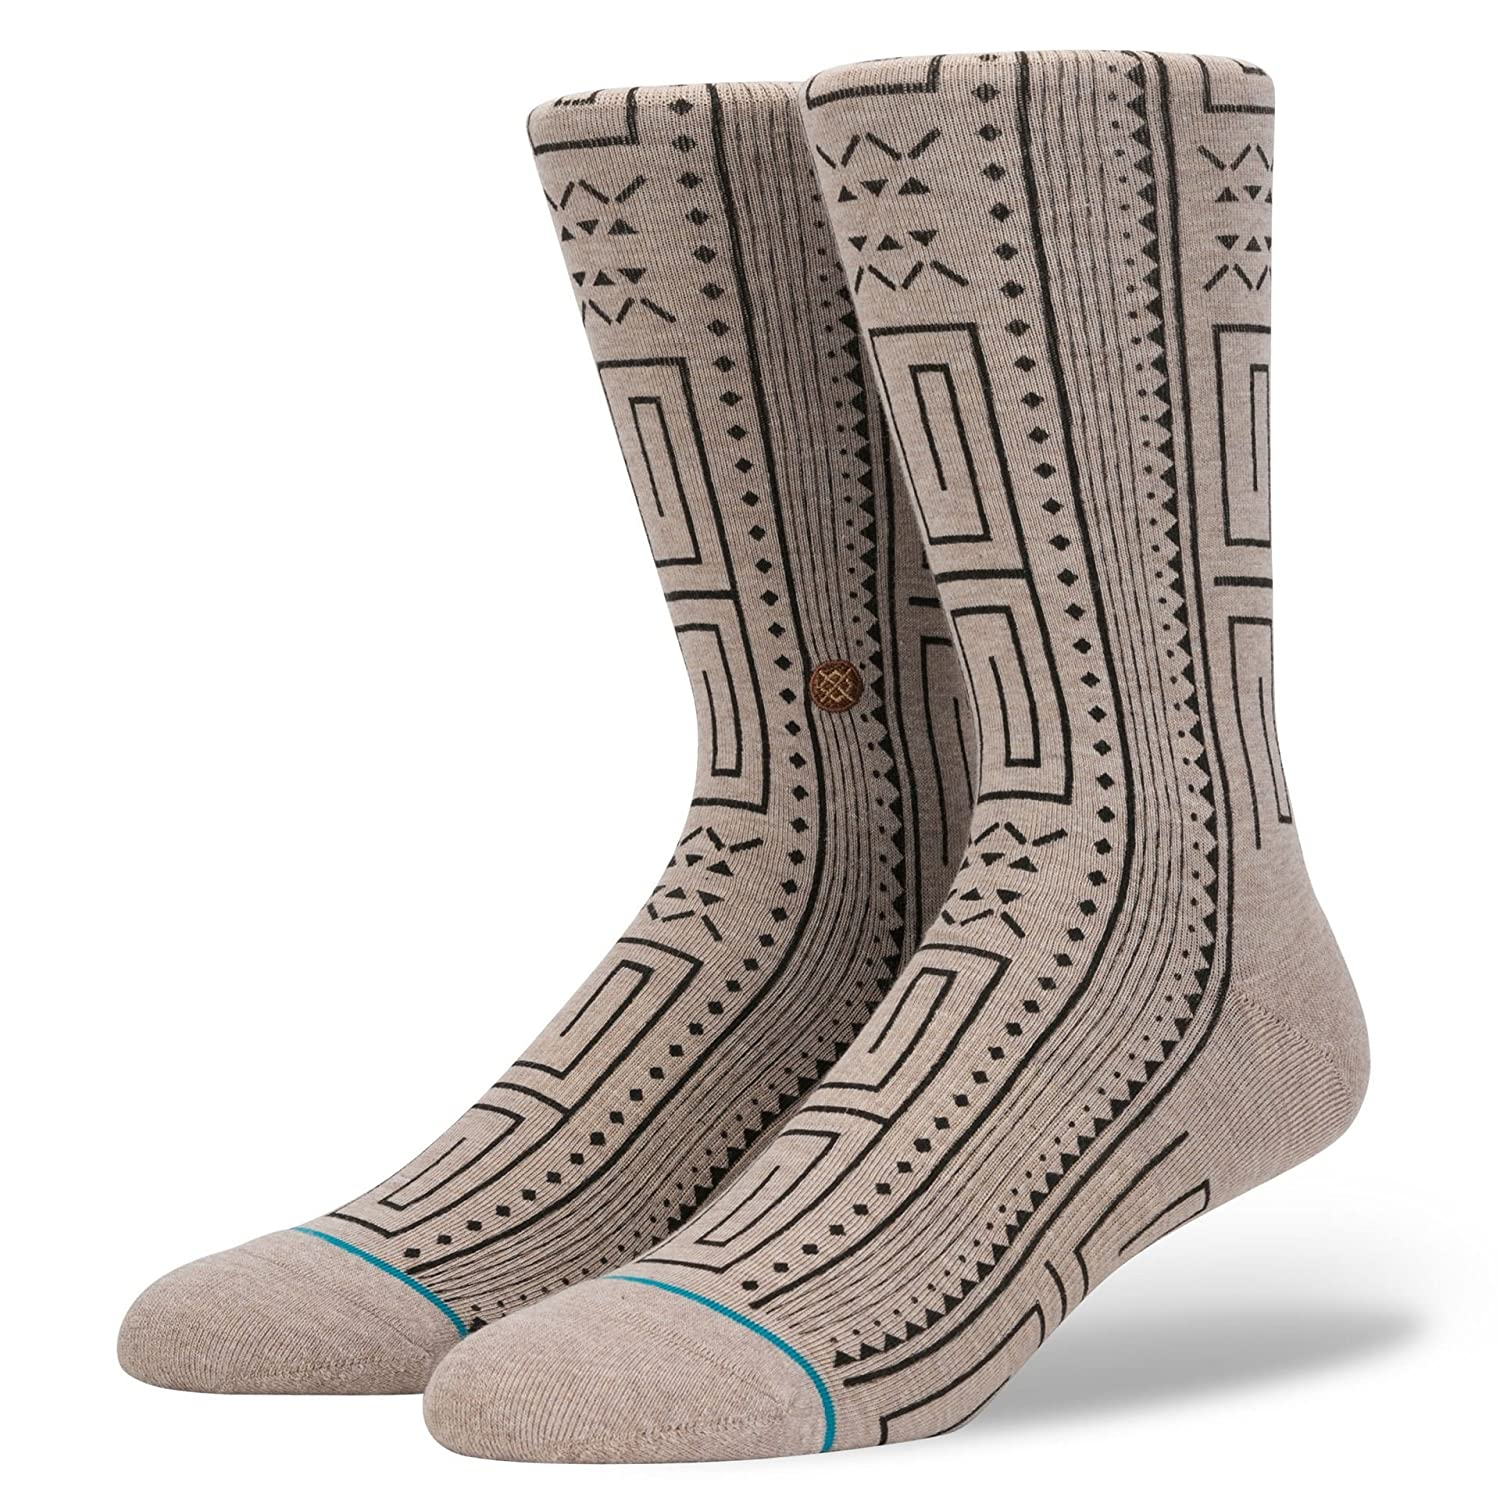 Stance Peruvian Blend Crew Socks - Medium Roast Large Stance Socks M545A18PEU